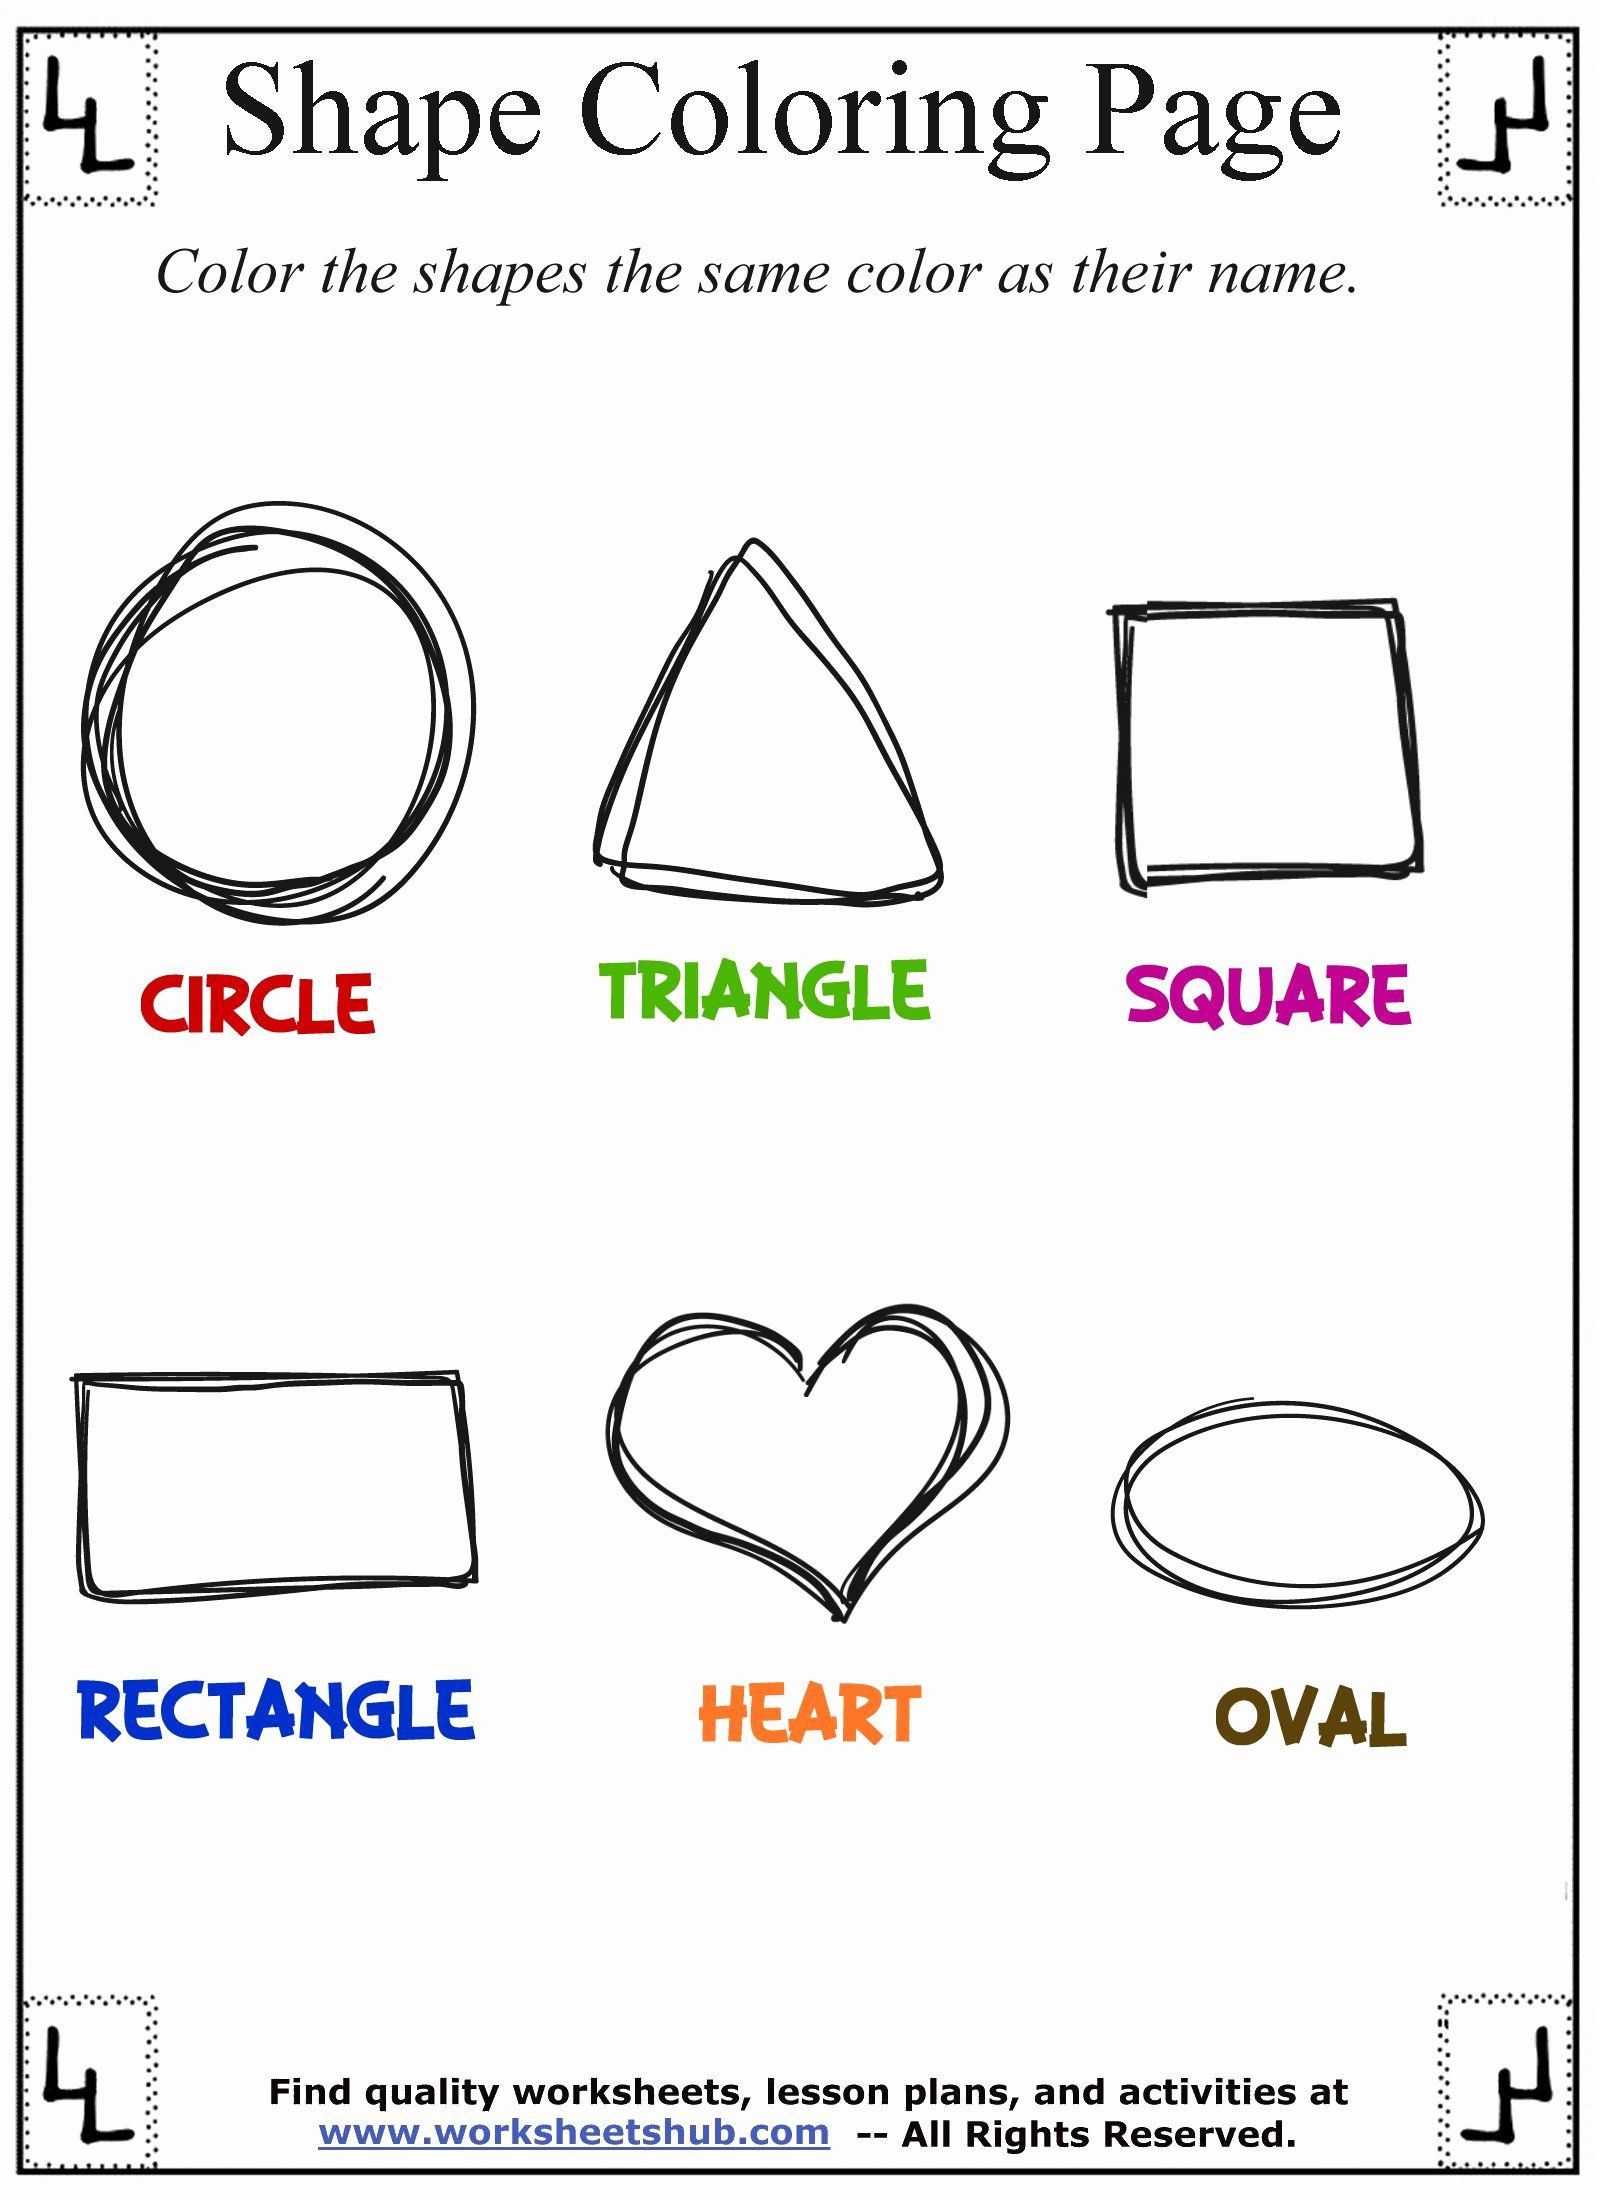 Shape Coloring Pages For Preschoolers Awesome Shape